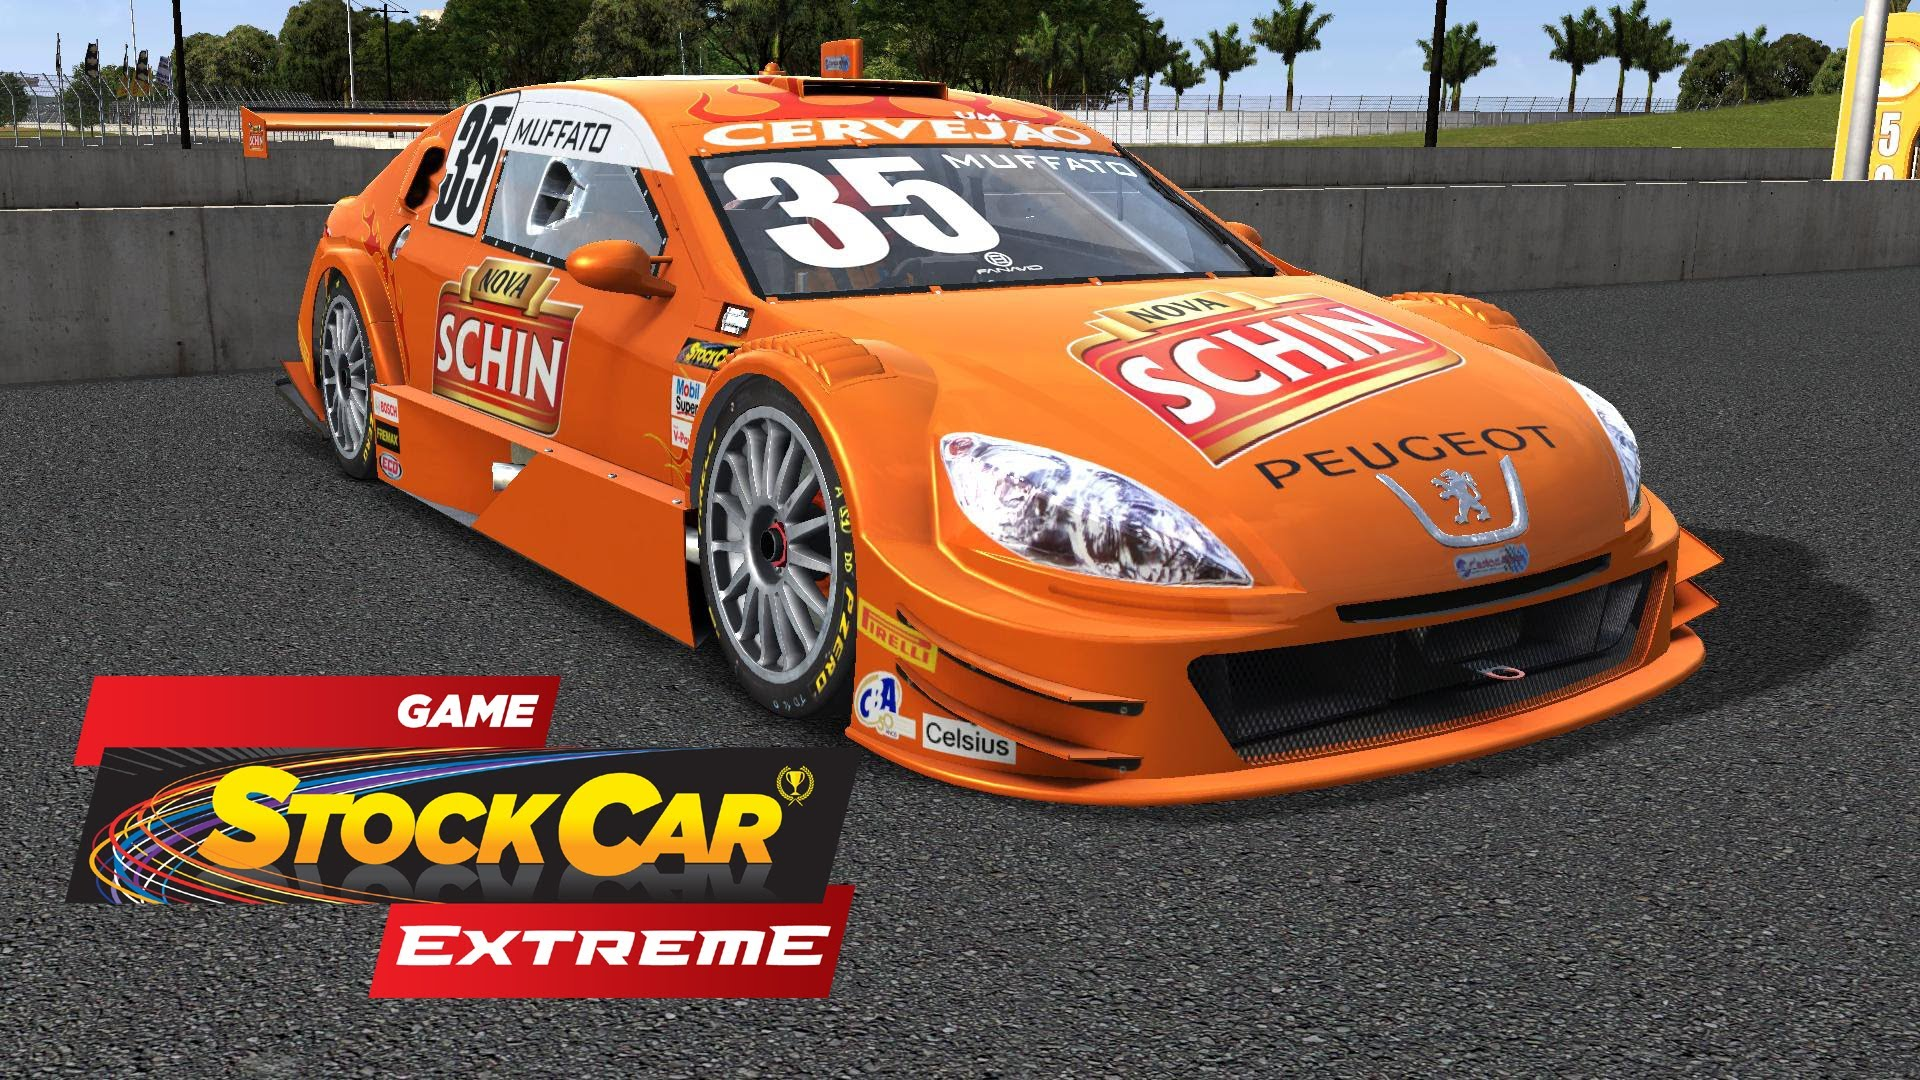 Game Stock Car Extreme review